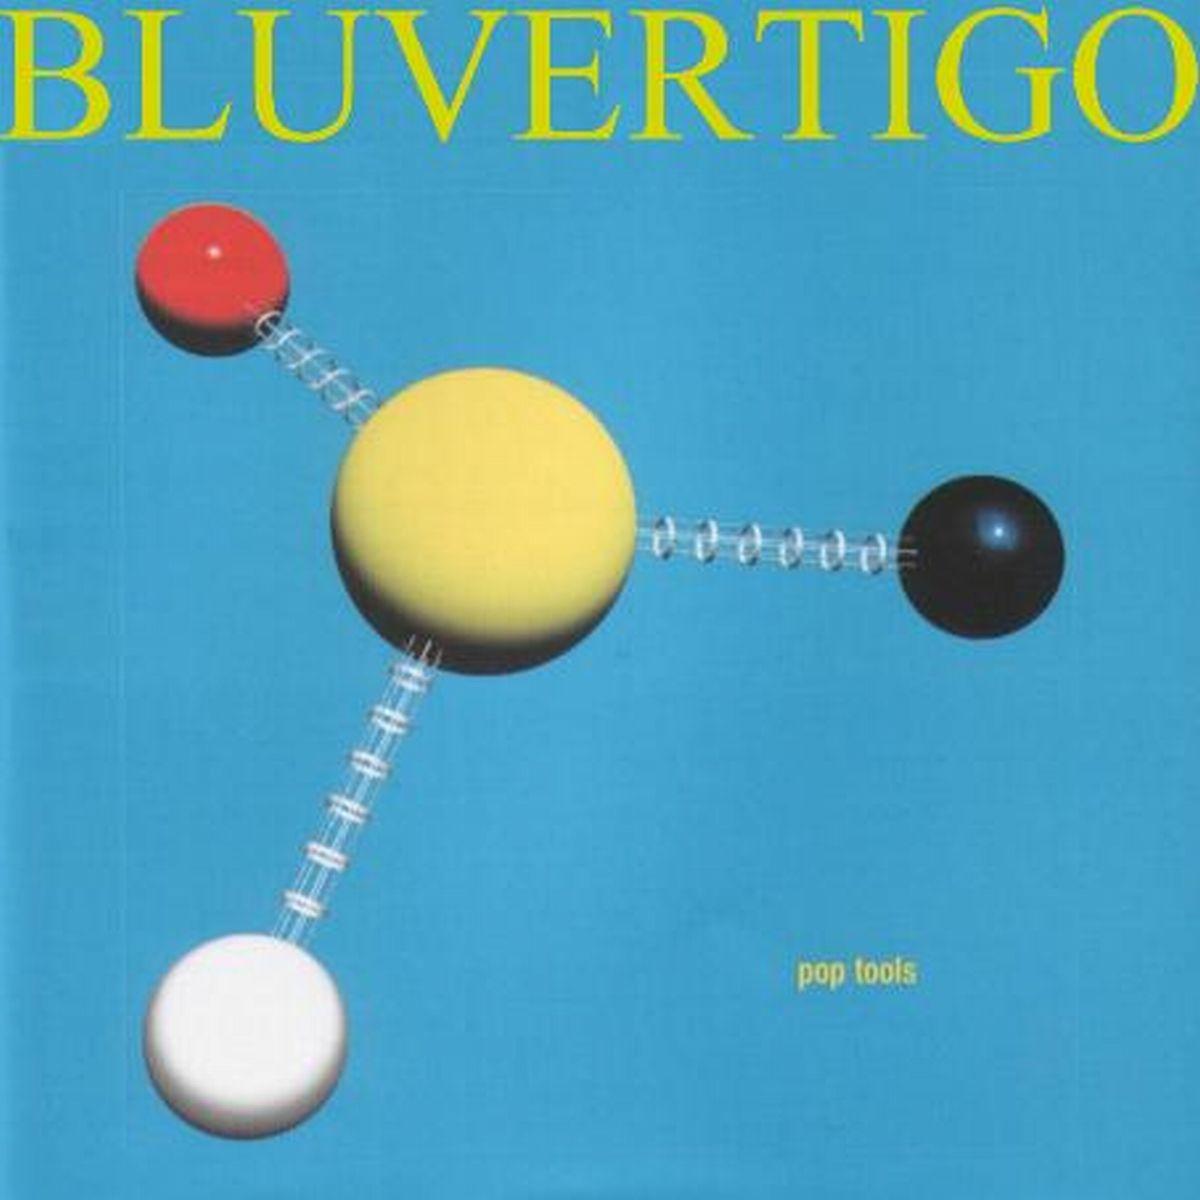 Bluvertigo - Pop Tools - Front